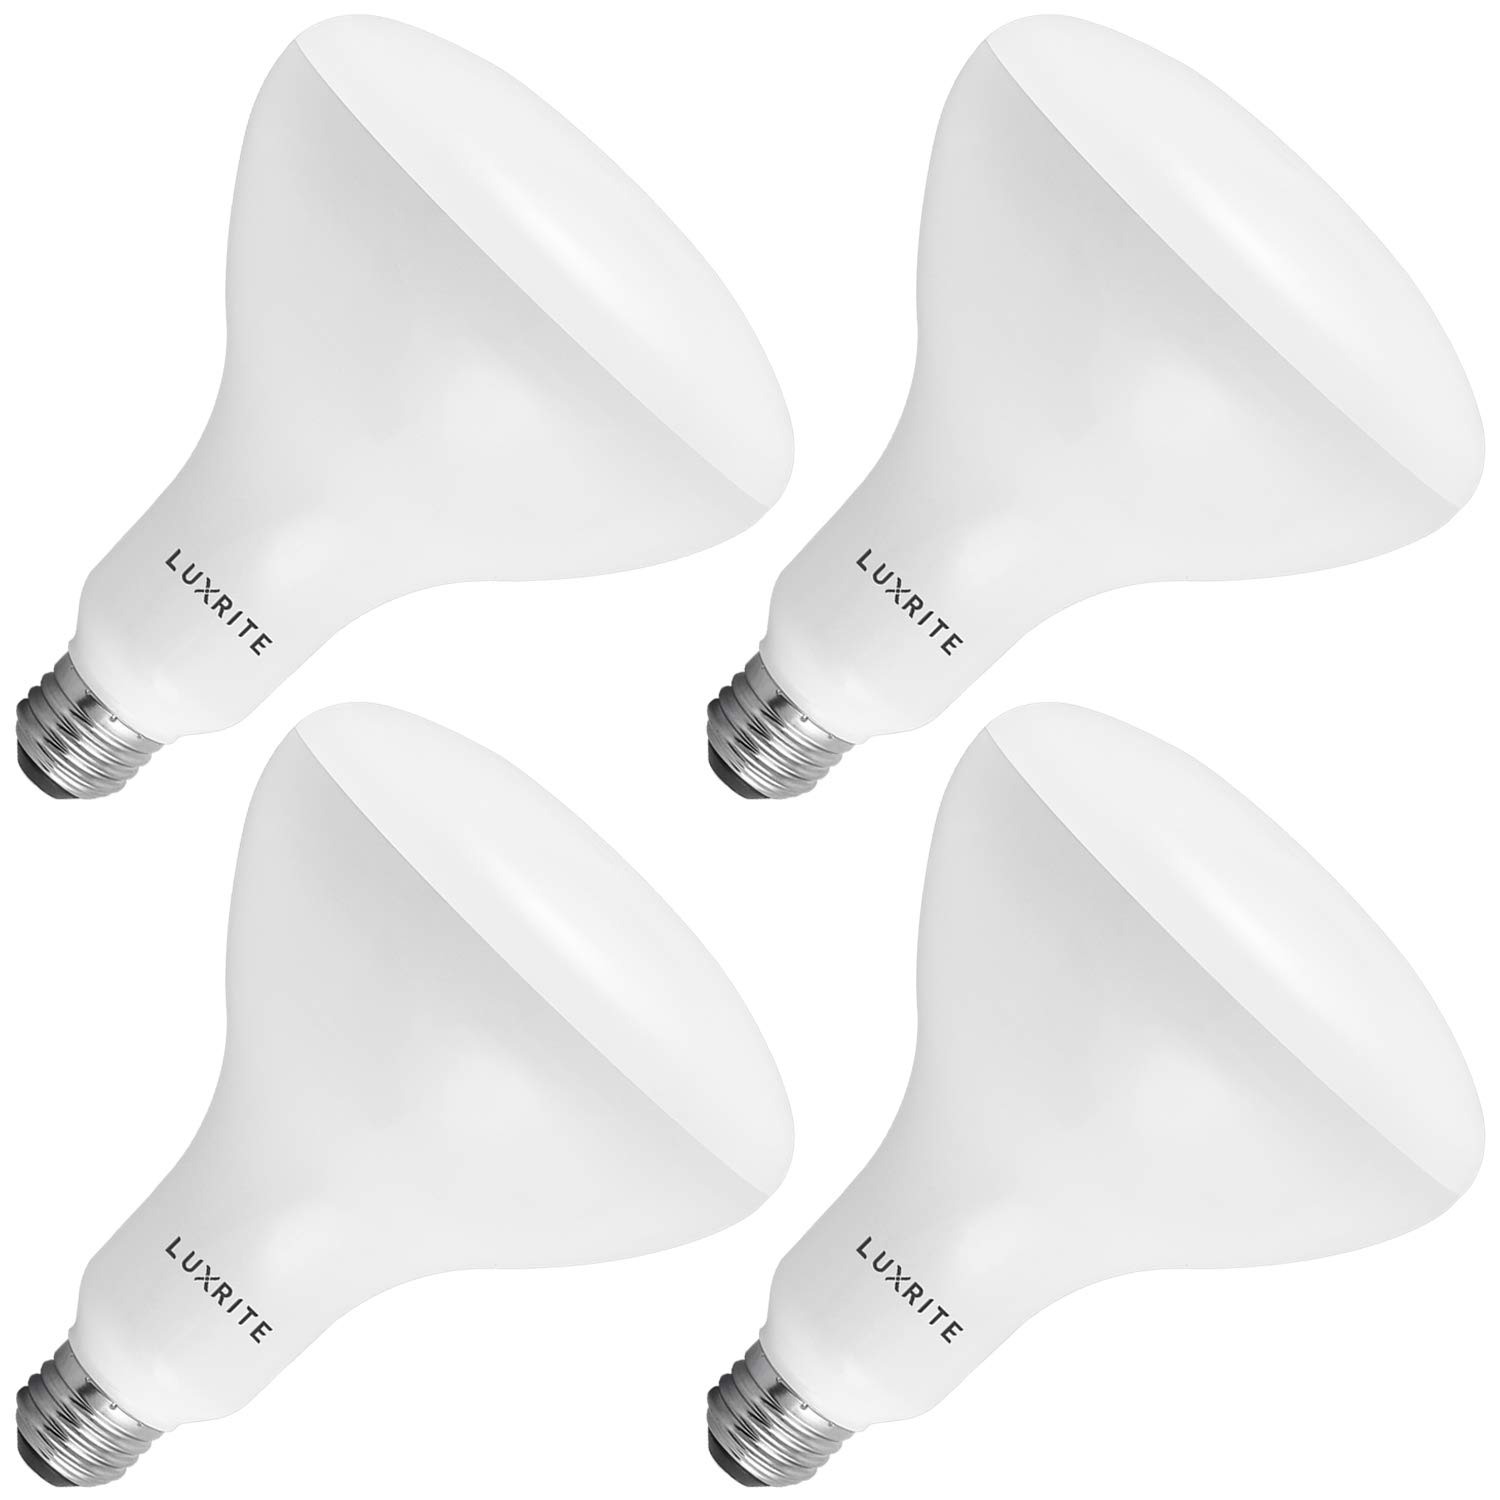 Luxrite BR40 LED Light Bulbs, 85W Equivalent, 3500K Natural White, Dimmable, 1100 Lumens, LED Flood Light Bulb, 14W, E26 Medium Base, Indoor/Outdoor - Perfect for Office and Recessed Lighting (4-Pack)